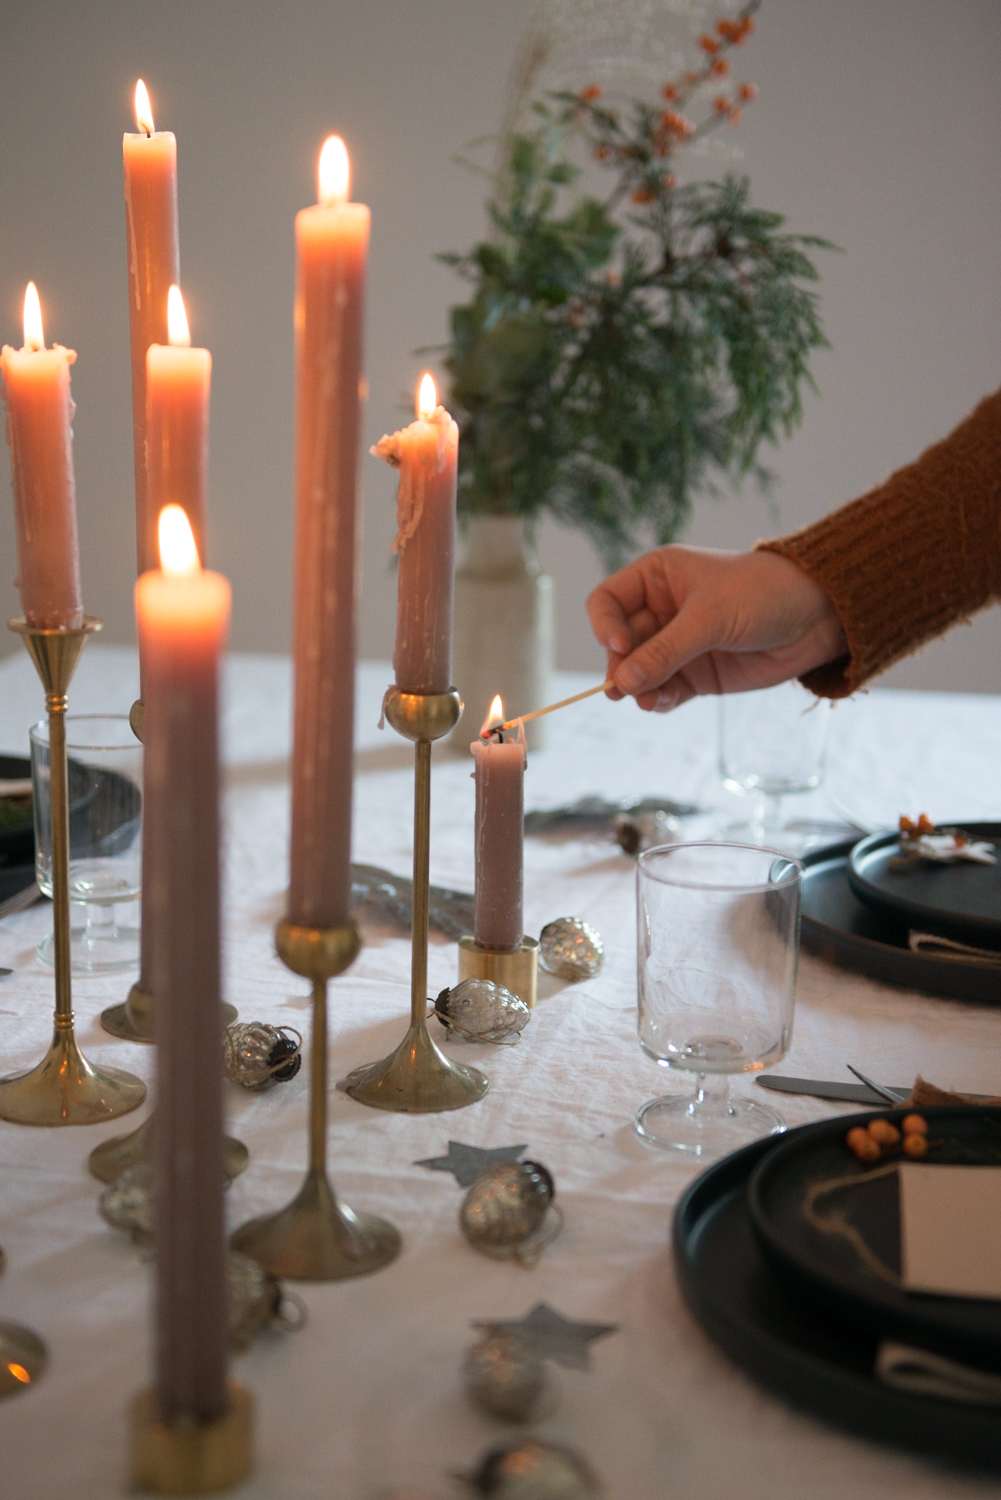 5 steps to lay a simple festive table